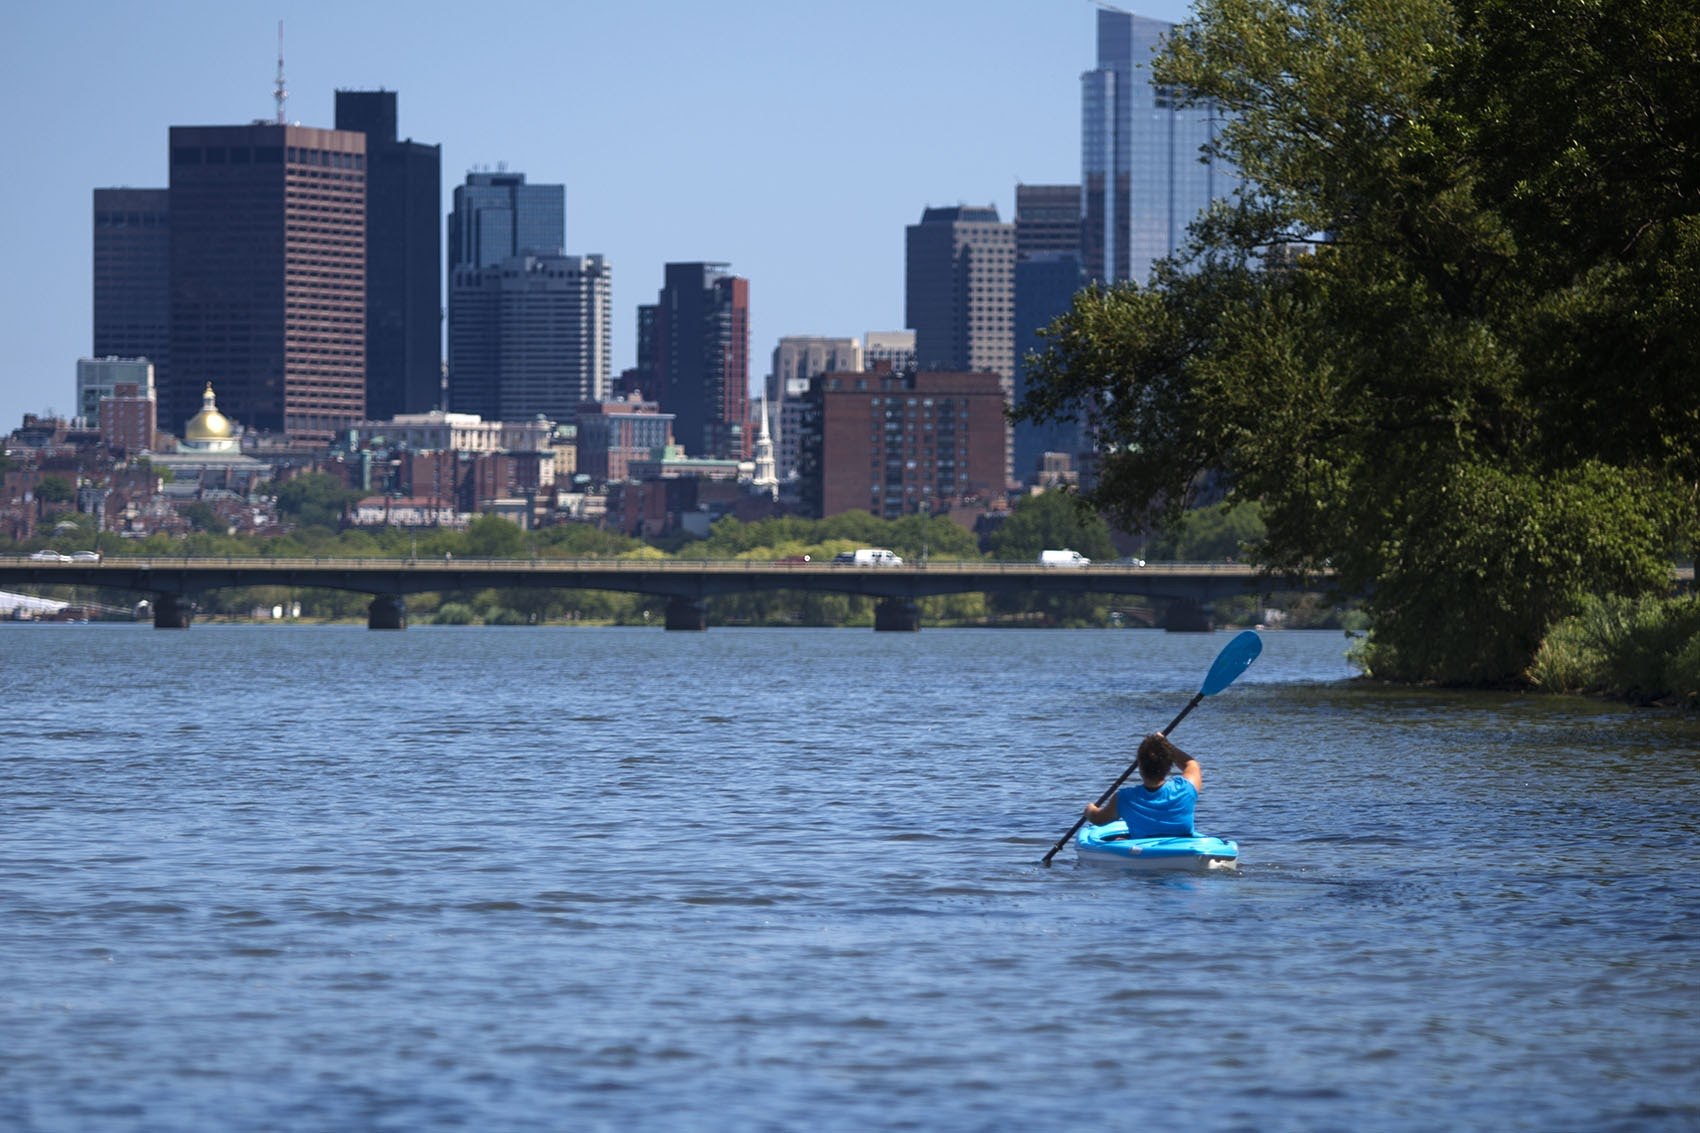 A woman kayaks in the Charles River. (Jesse Costa/WBUR)